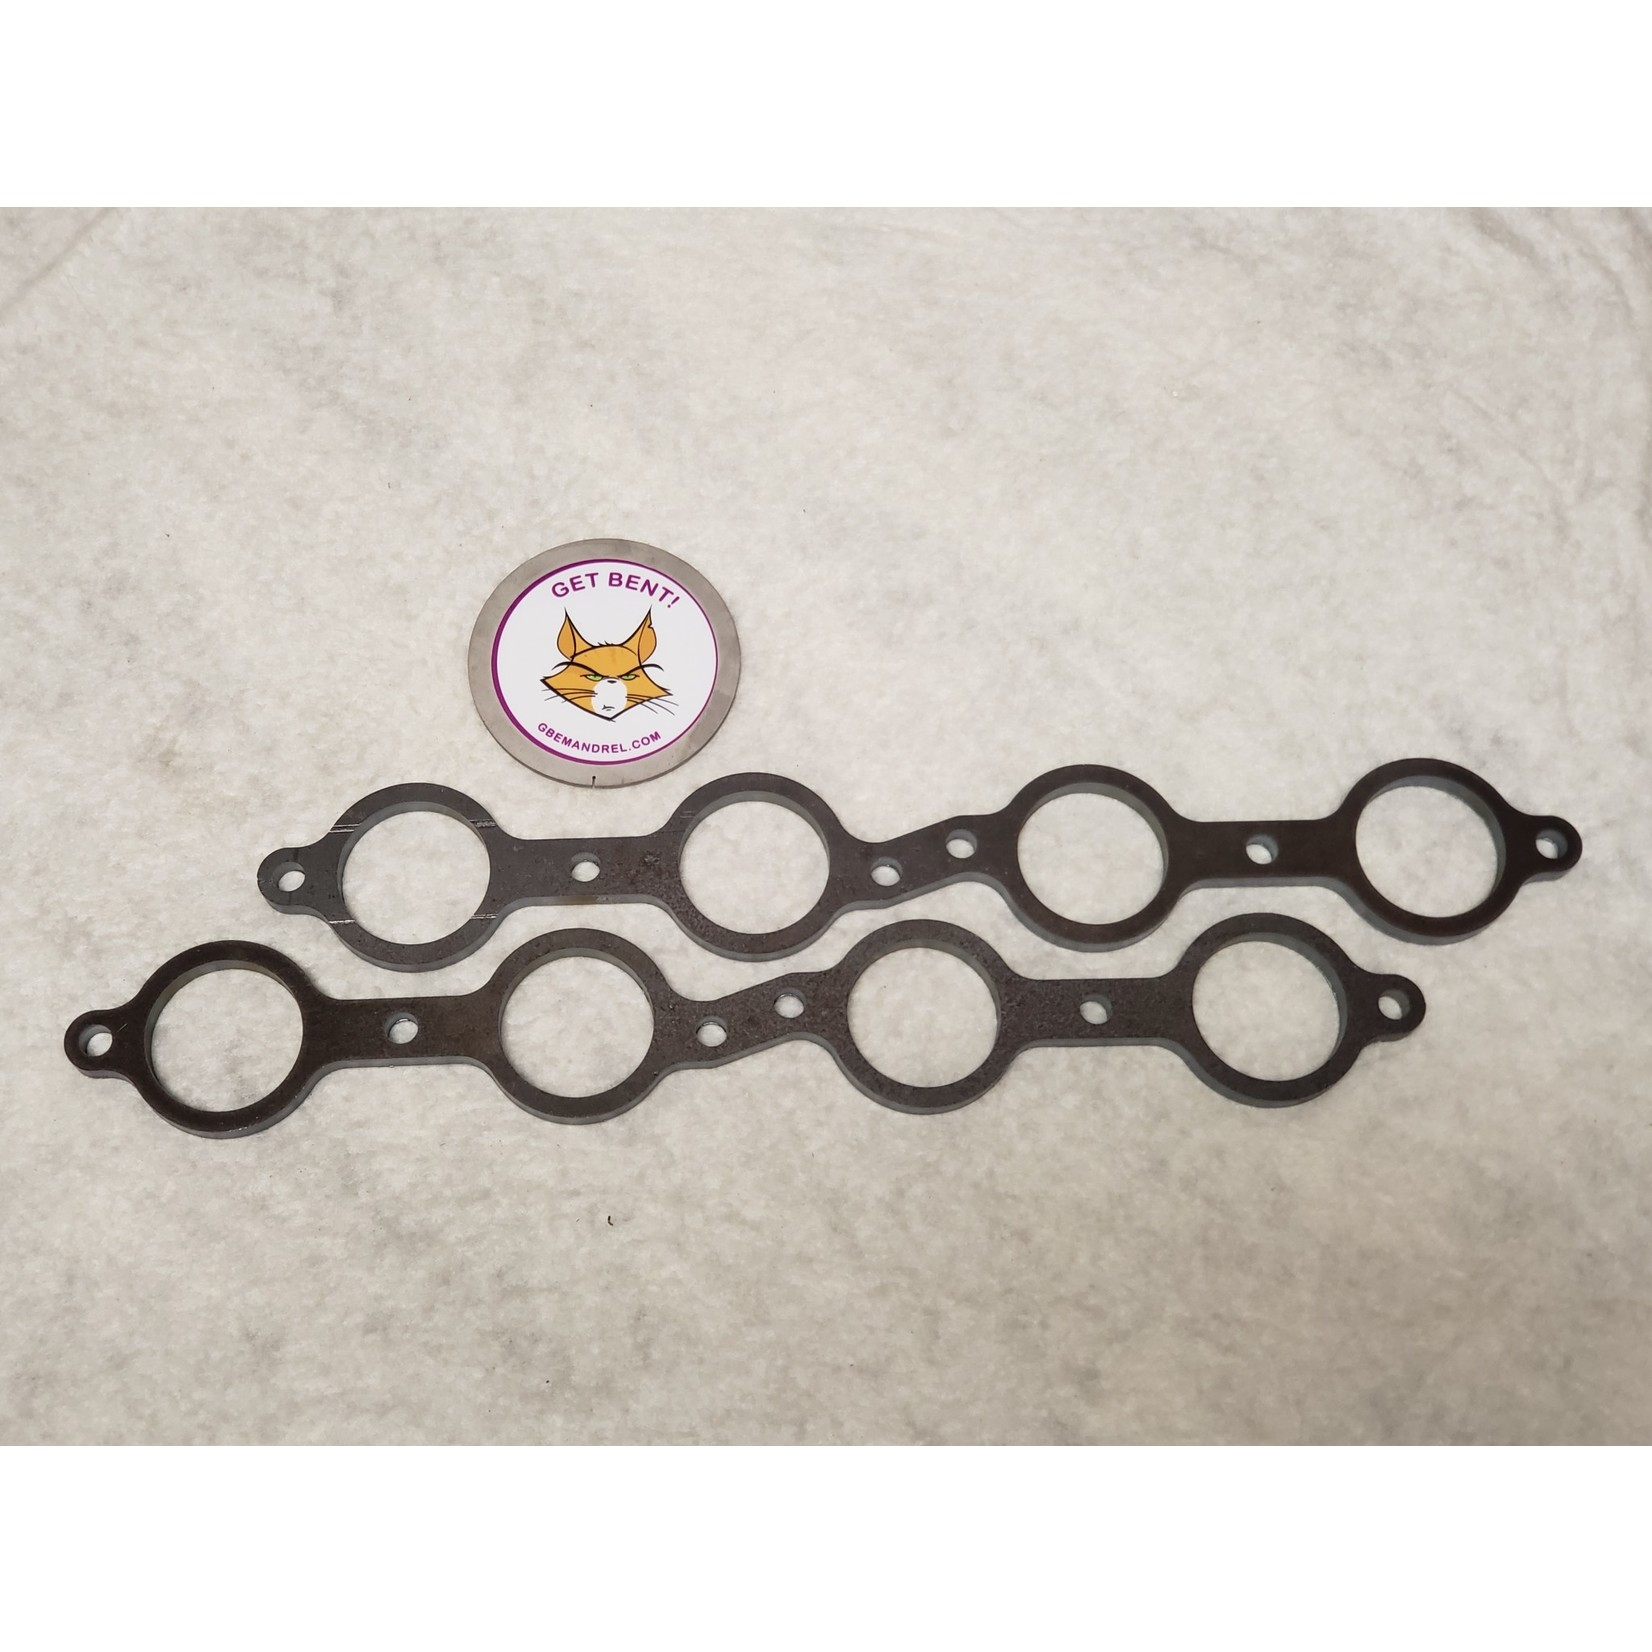 GBE GM CHEVY LS 1-7 STEEL HEADER FLANGES